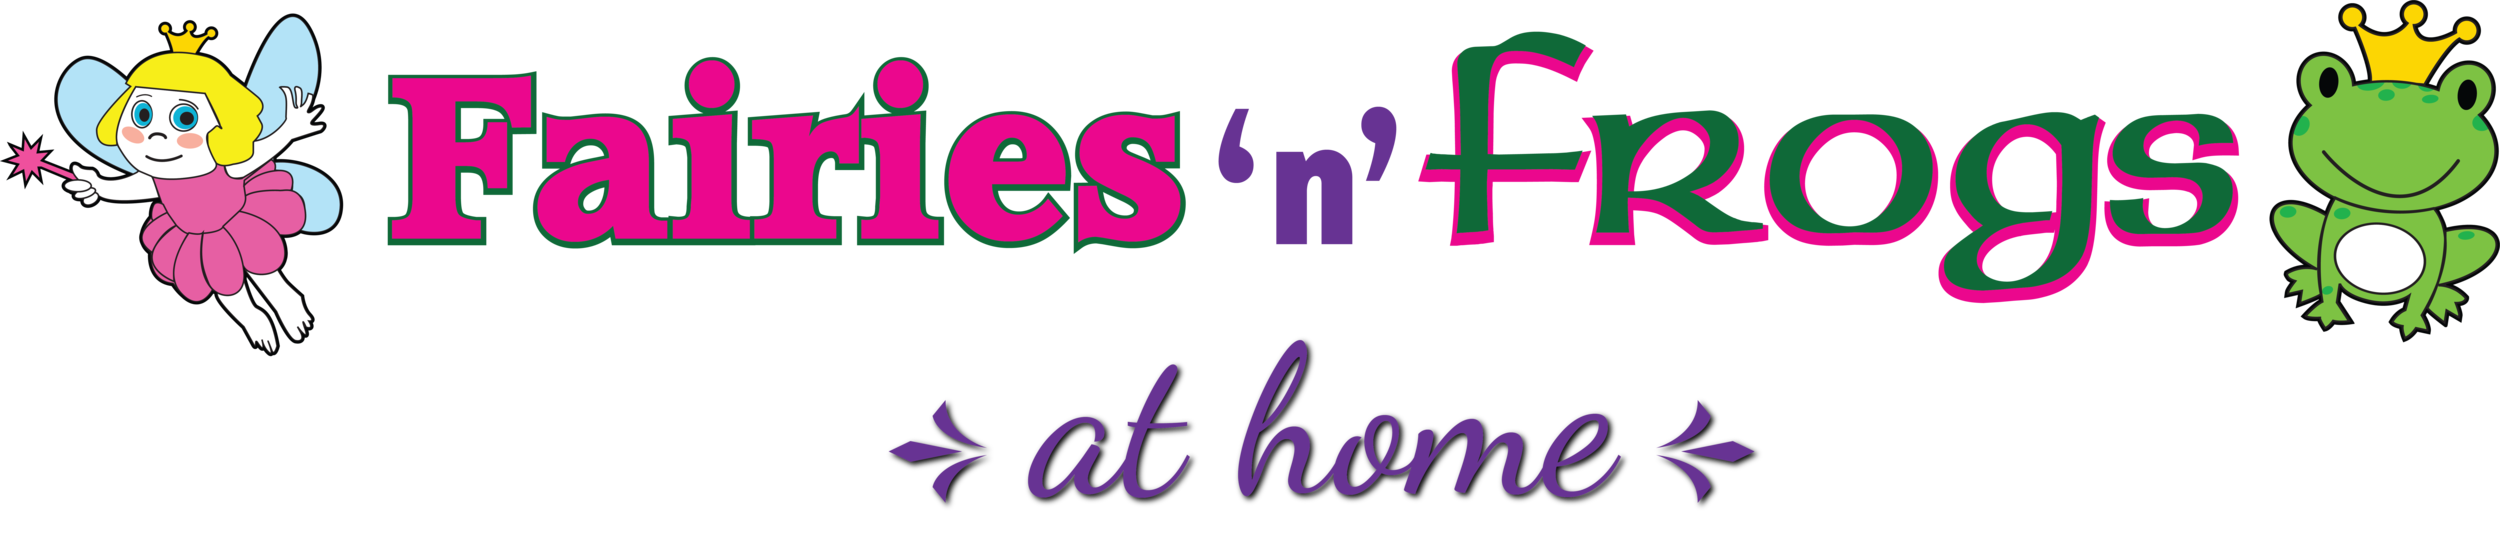 Fairies n Frogs at home HIGRES - Final Logo.png